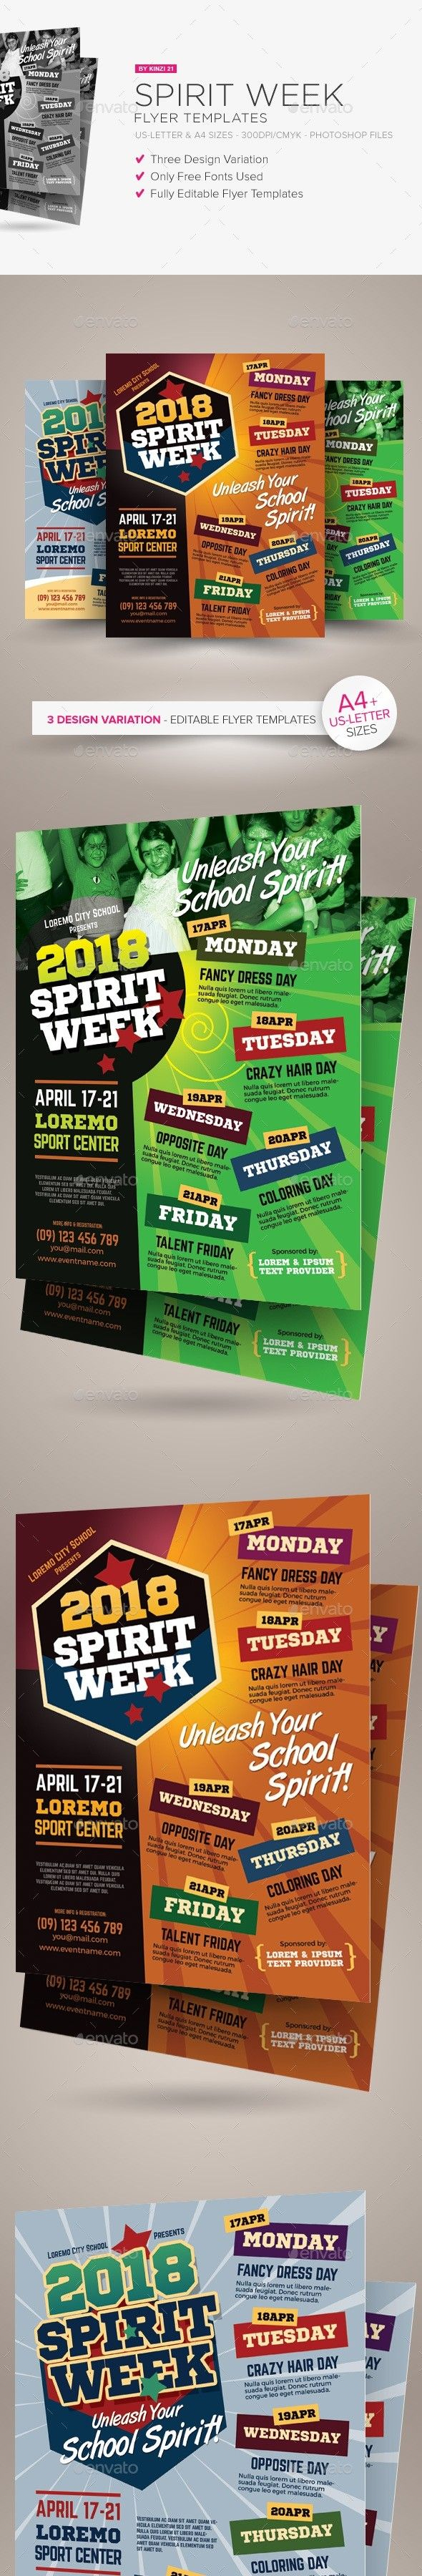 spirit week flyer templates pinterest flyer template event flyers and template